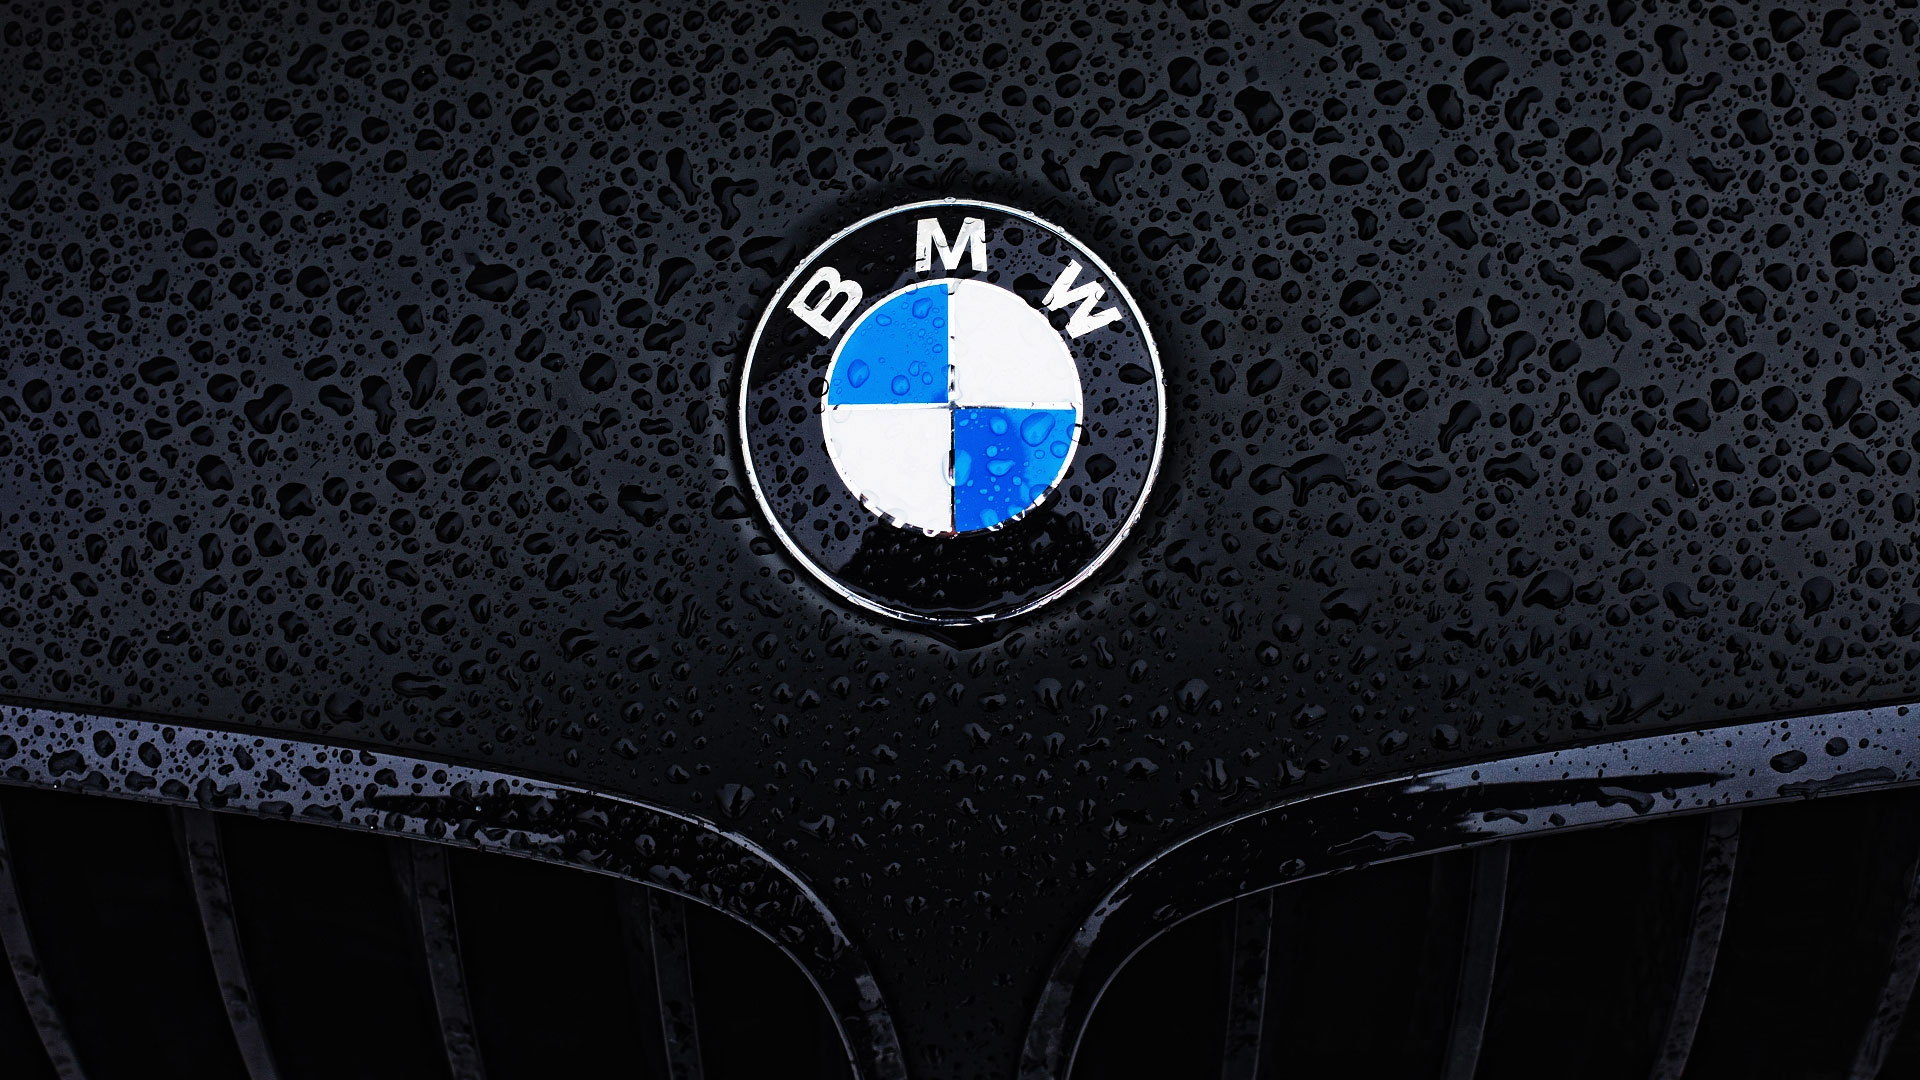 bmw-logo-water-drops-hd-1080p-wallpaper - serena digital